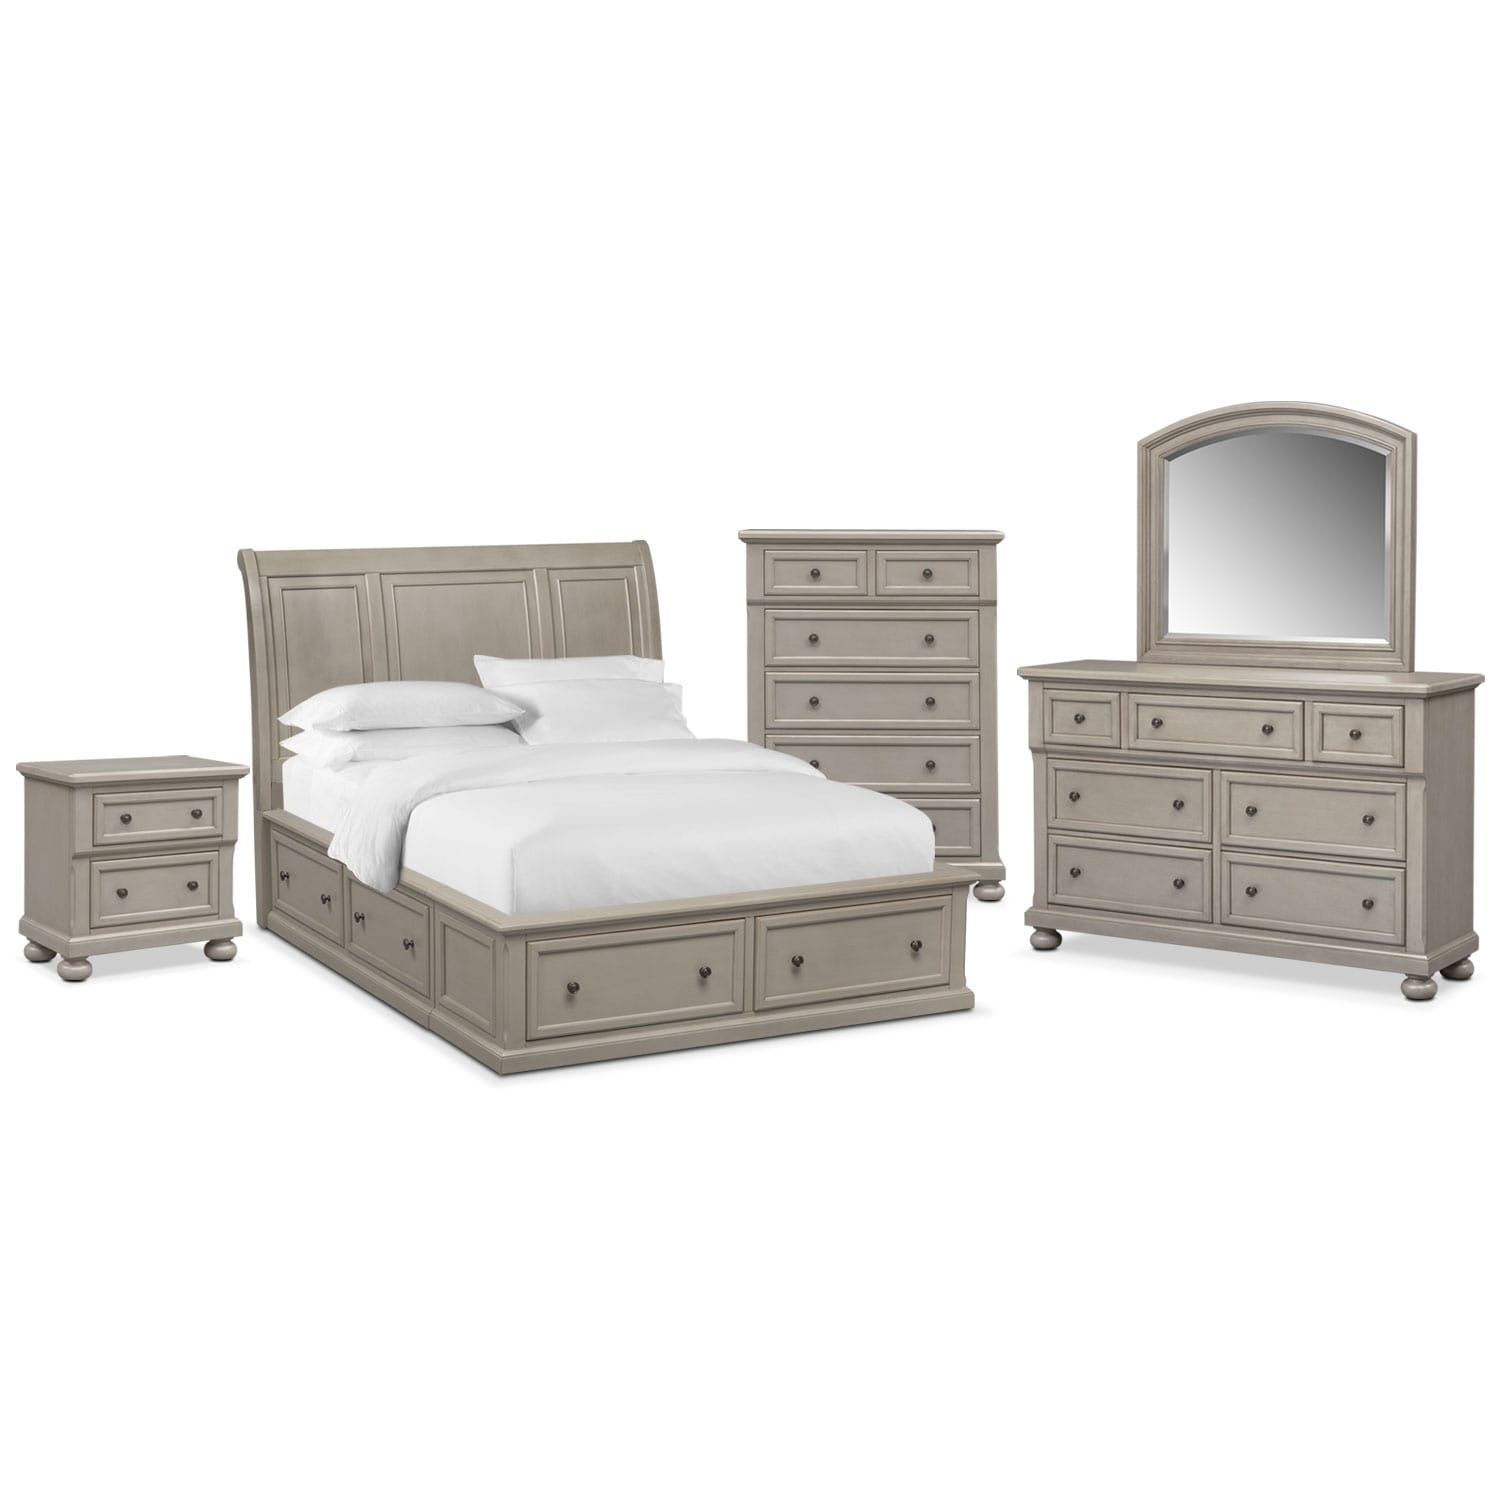 Bedroom Furniture - Hanover Queen 7-Piece Storage Bedroom Set - Gray